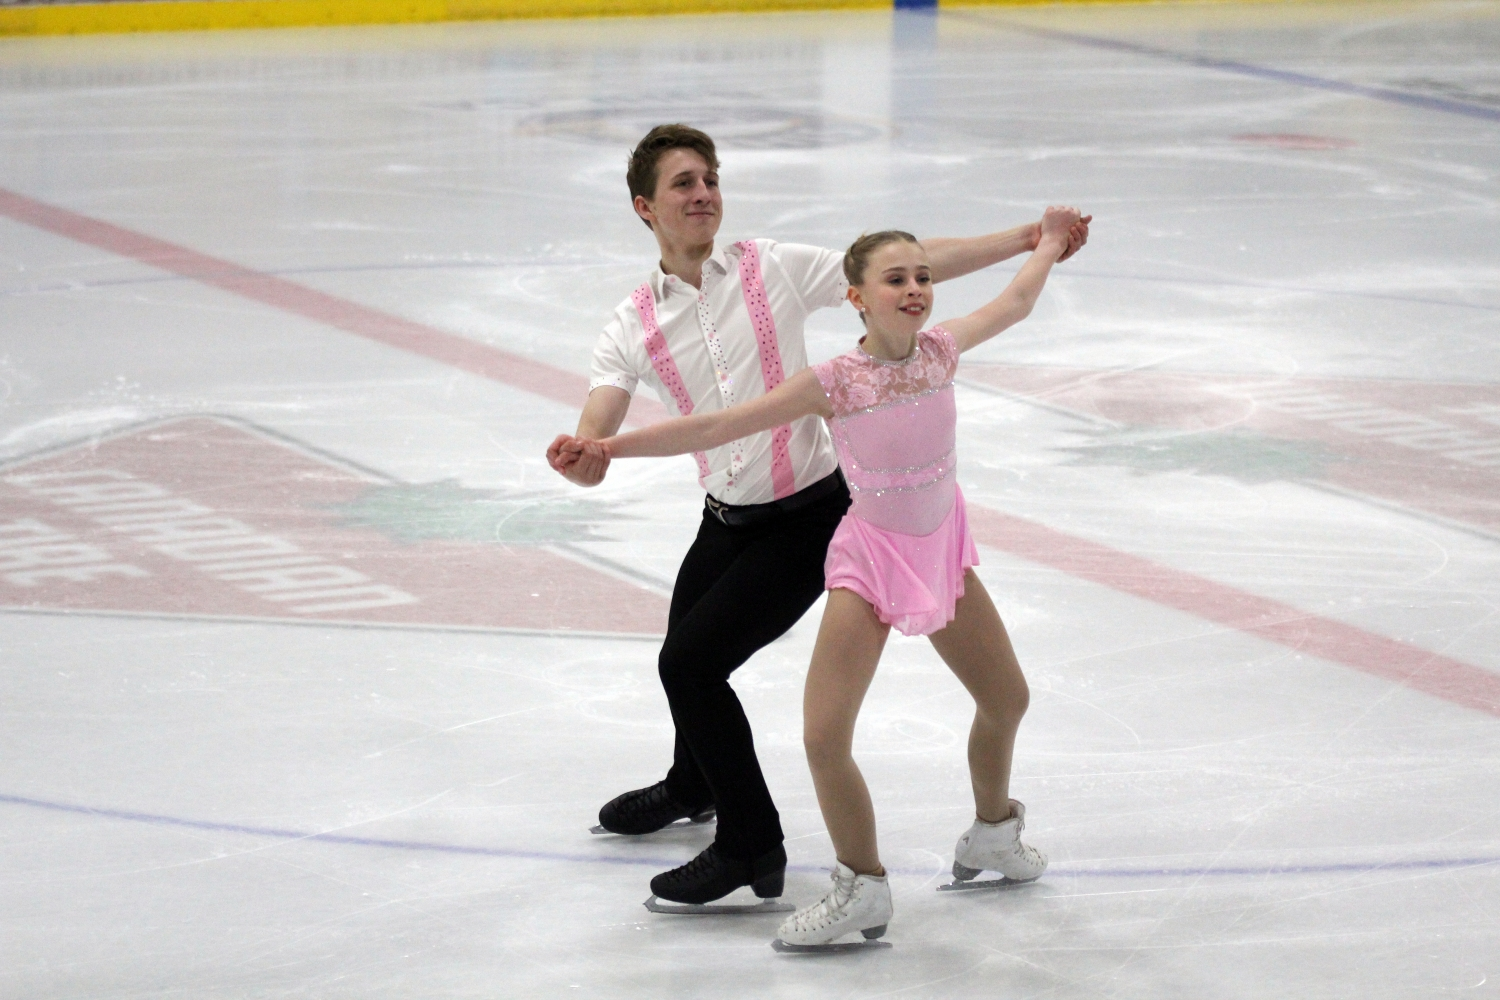 Ashlyn Schmitz and Tristan Taylor selected to Skate Canada's NextGen Team